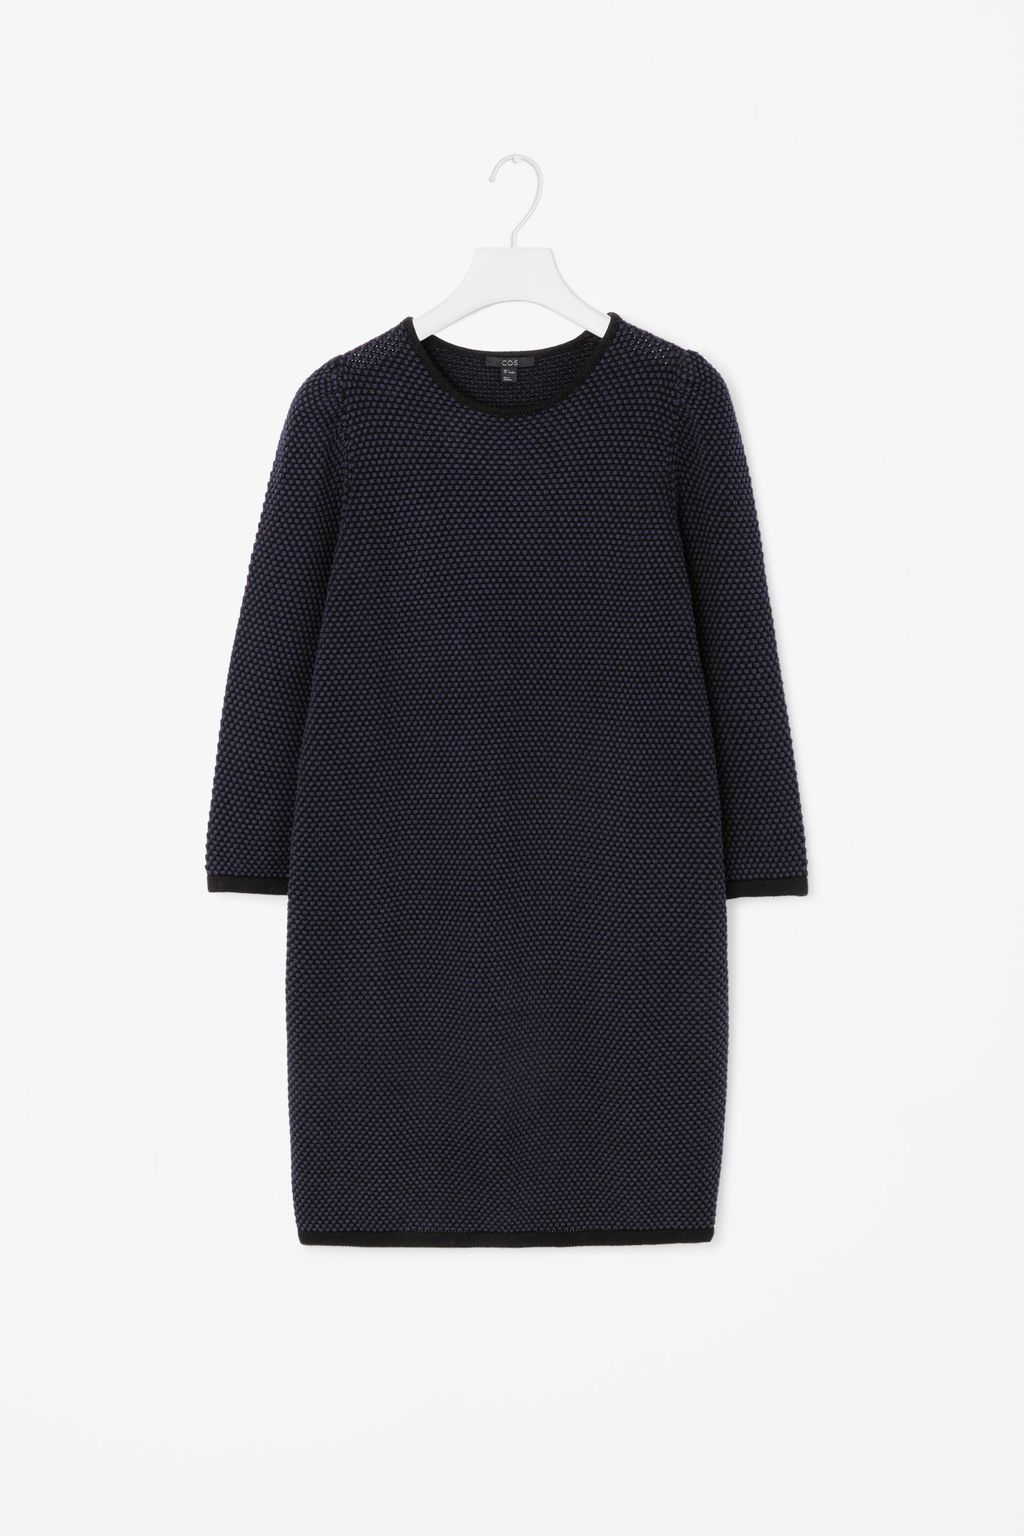 Textured Knit Dress - style: jumper dress; pattern: plain; predominant colour: navy; occasions: casual, creative work; length: just above the knee; fit: straight cut; fibres: cotton - 100%; neckline: crew; sleeve length: long sleeve; sleeve style: standard; texture group: knits/crochet; pattern type: knitted - fine stitch; season: a/w 2015; wardrobe: basic